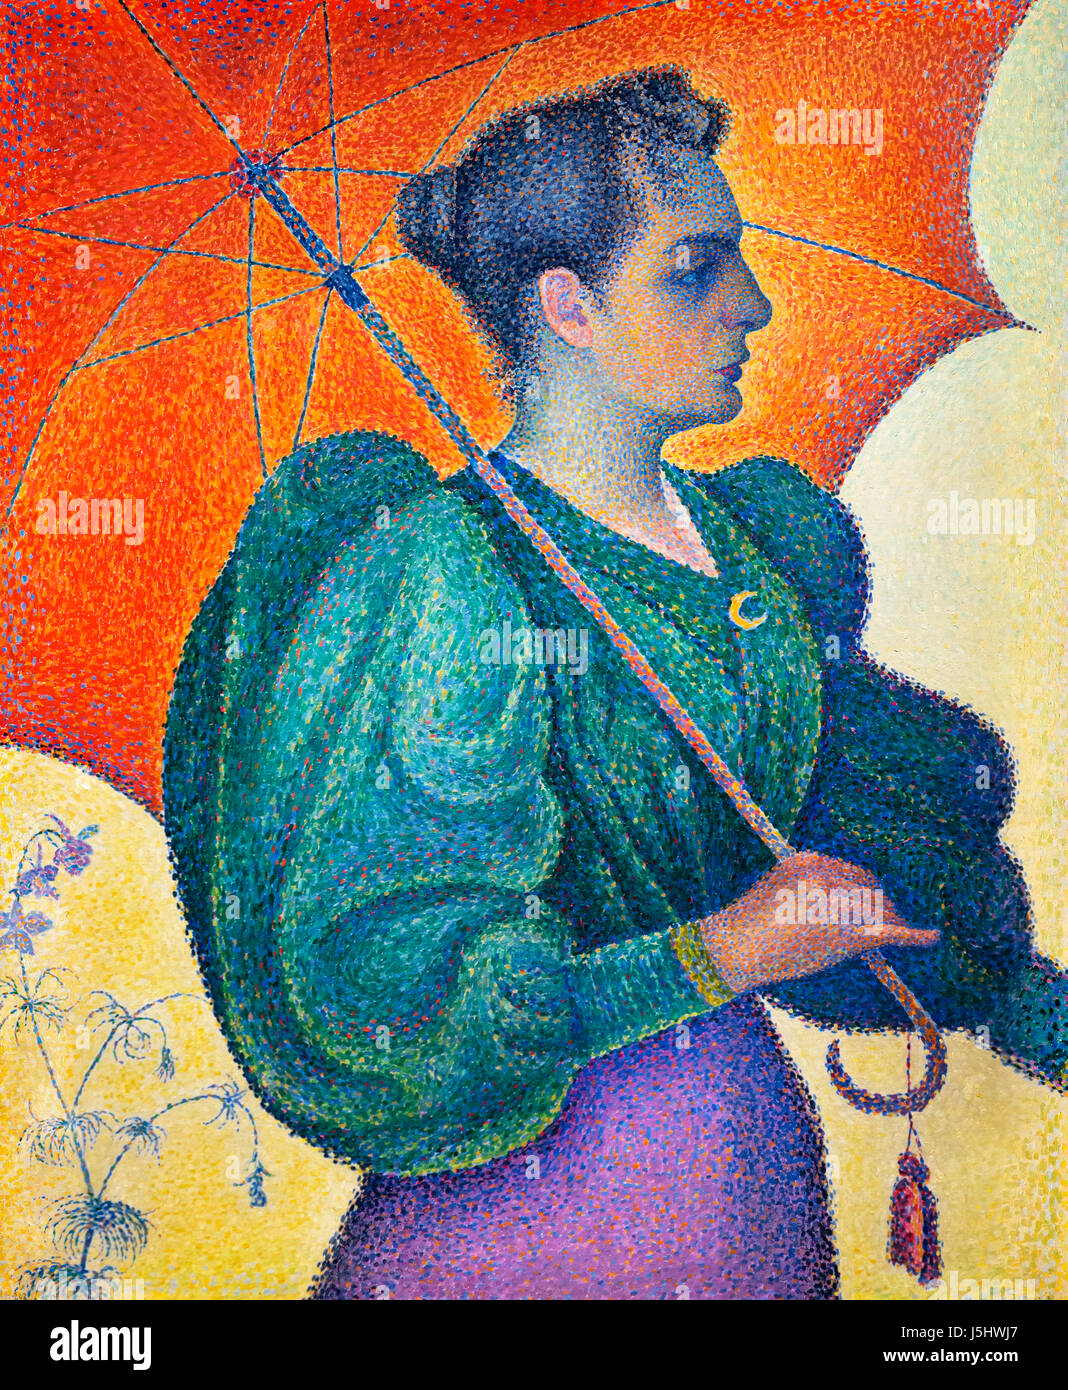 "Pointillism. ""La Femme a l'Ombrelle"" by Paul Signac (1863-1935), oil on canvas, 1893 Stock Photo"